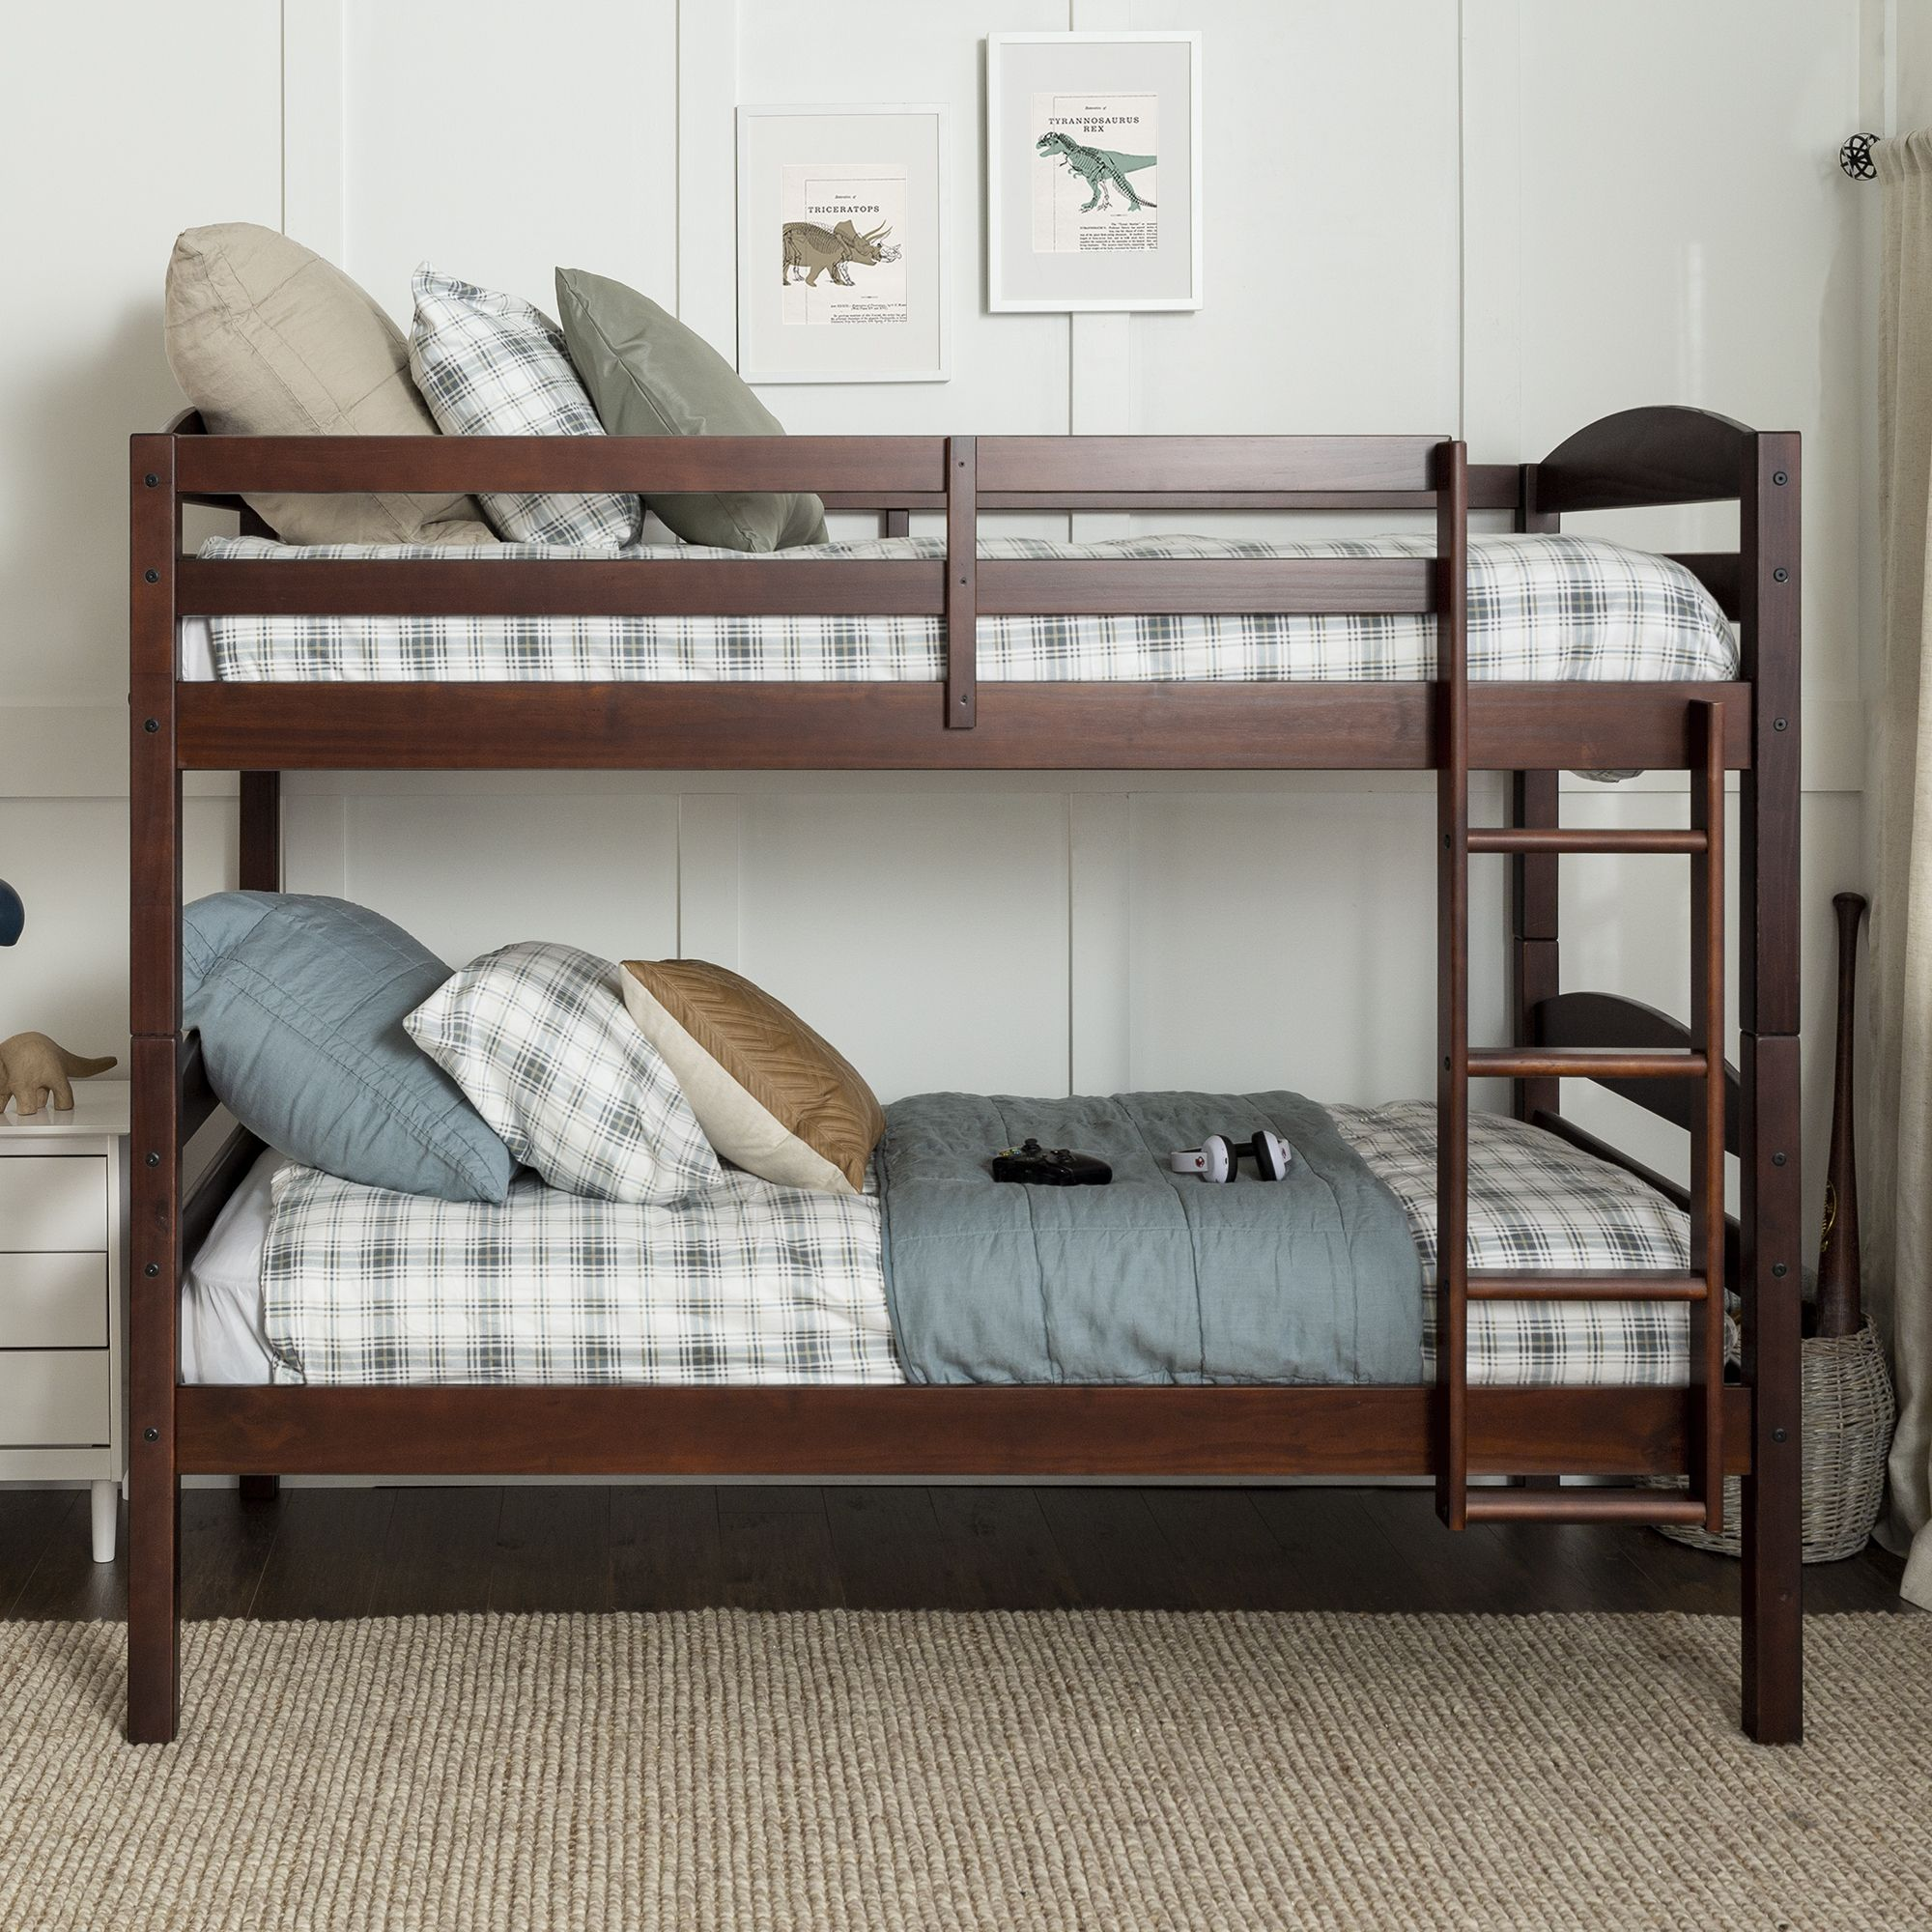 Picture of: W Trends Twin Size Solid Wood Bunk Bed Espresso Bjs Wholesale Club